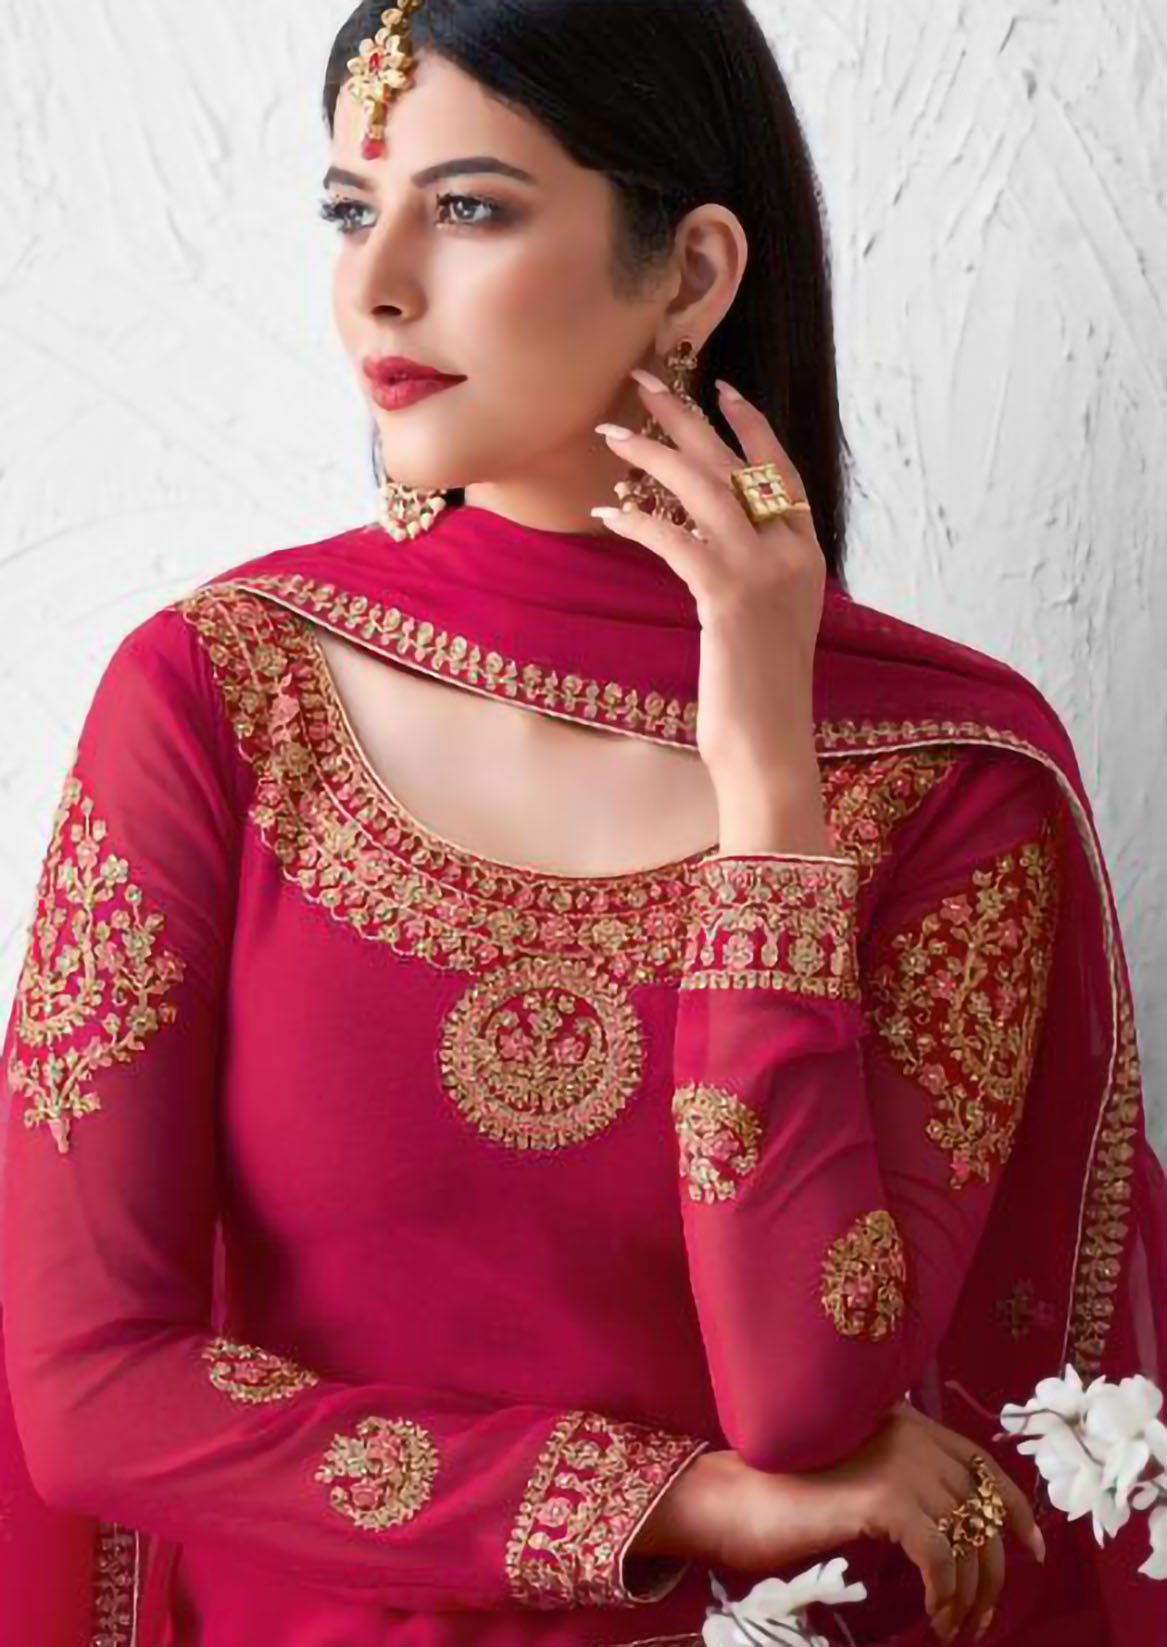 Rose Pink Heavy Embroidered Bridal Salwar Suits with Dupatta